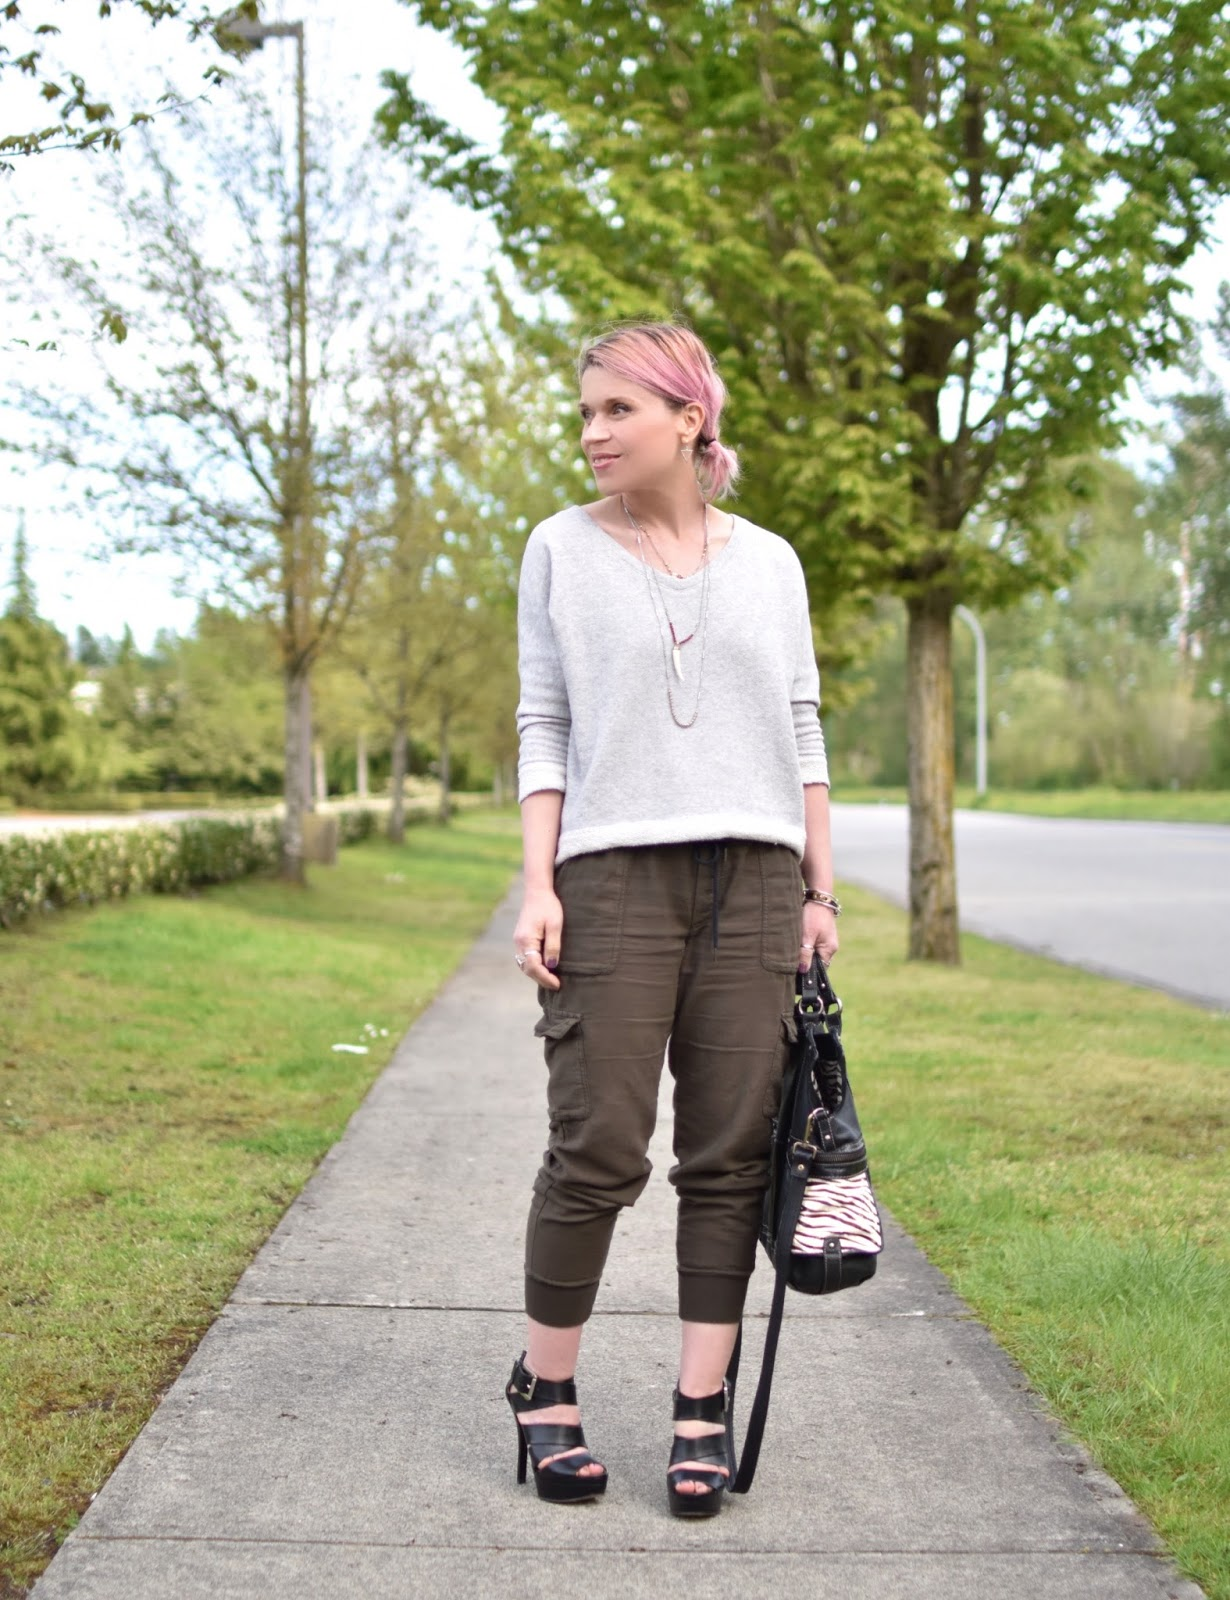 Well heeled:  Styling slouchy cargos with a sweatshirt and statement sandals